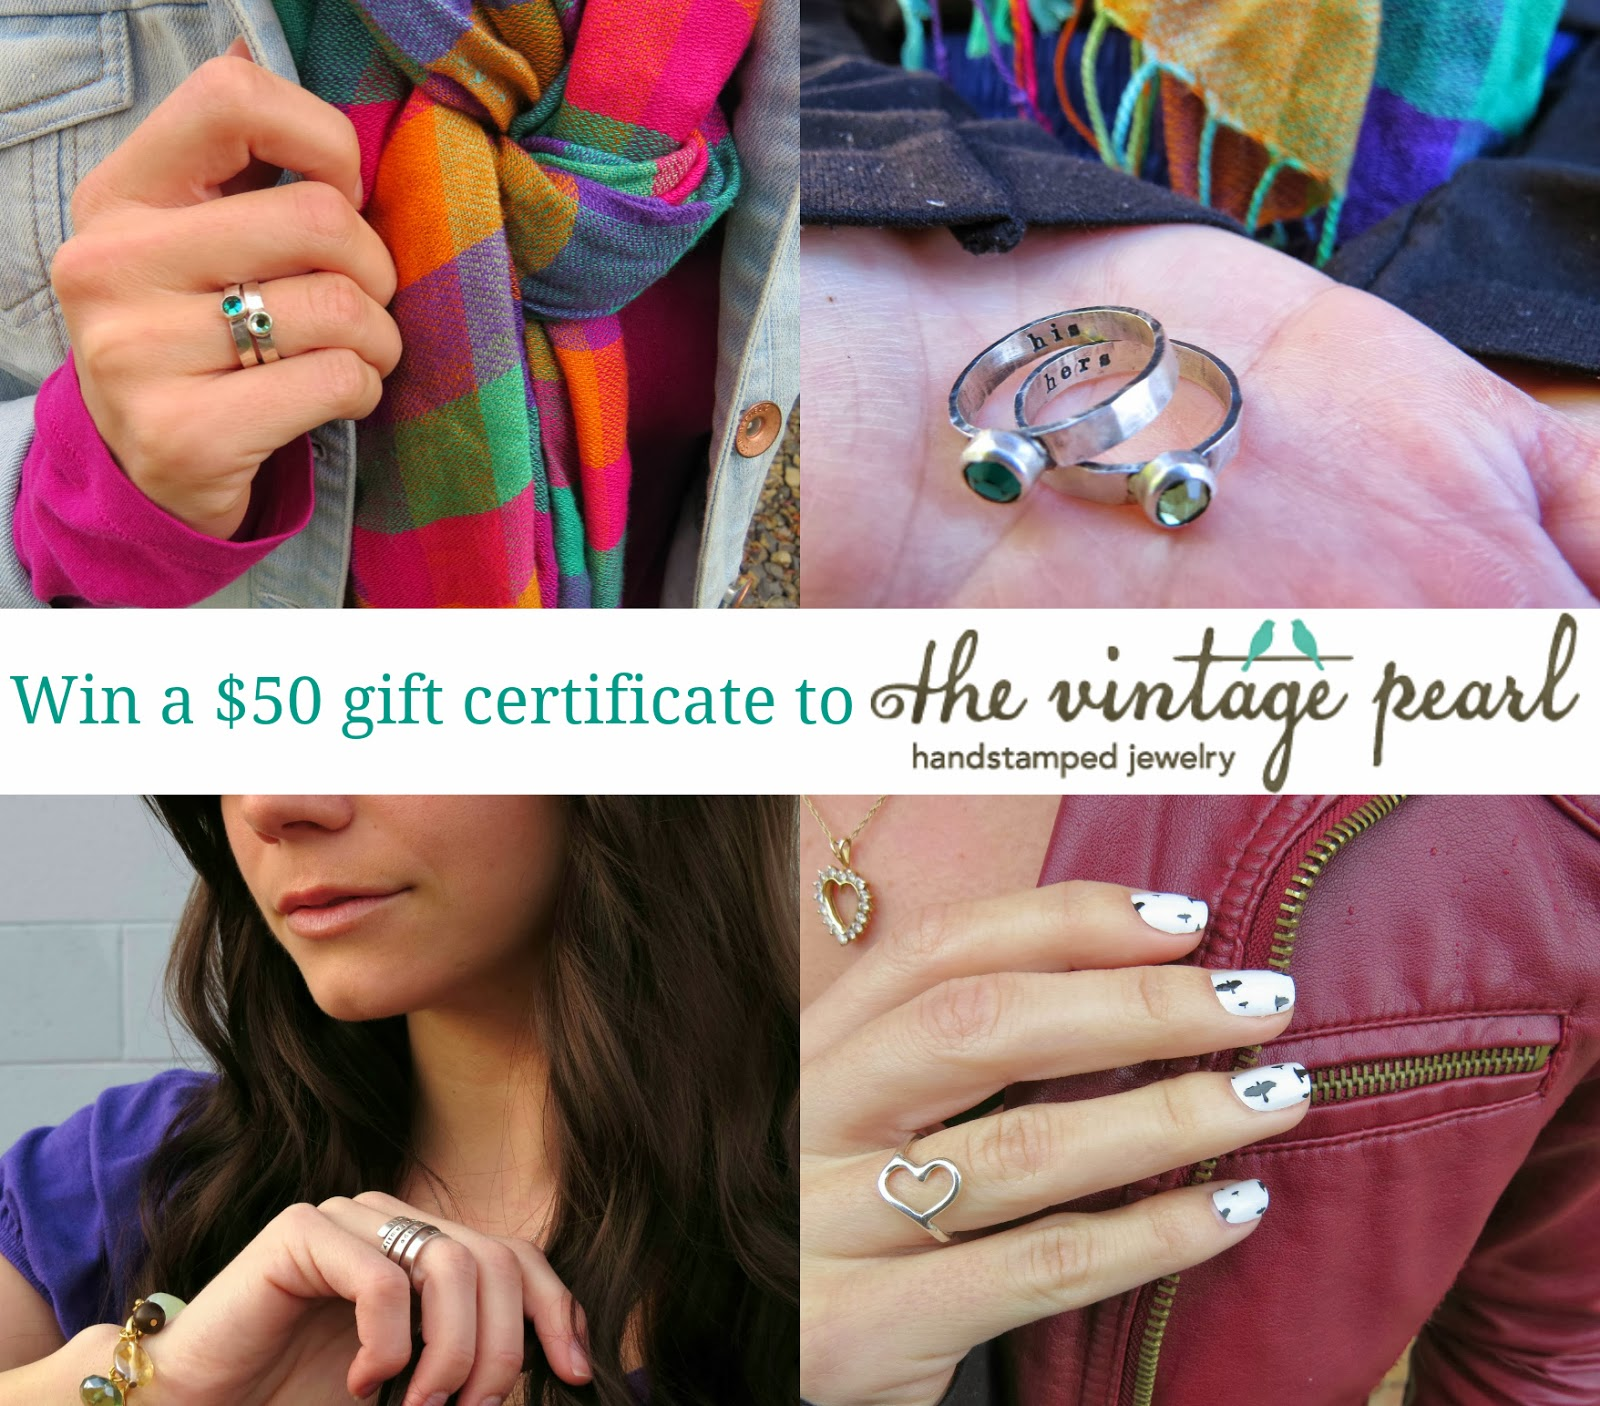 Win a $50 gift certificate to The Vintage Pearl, handstamped jewelry